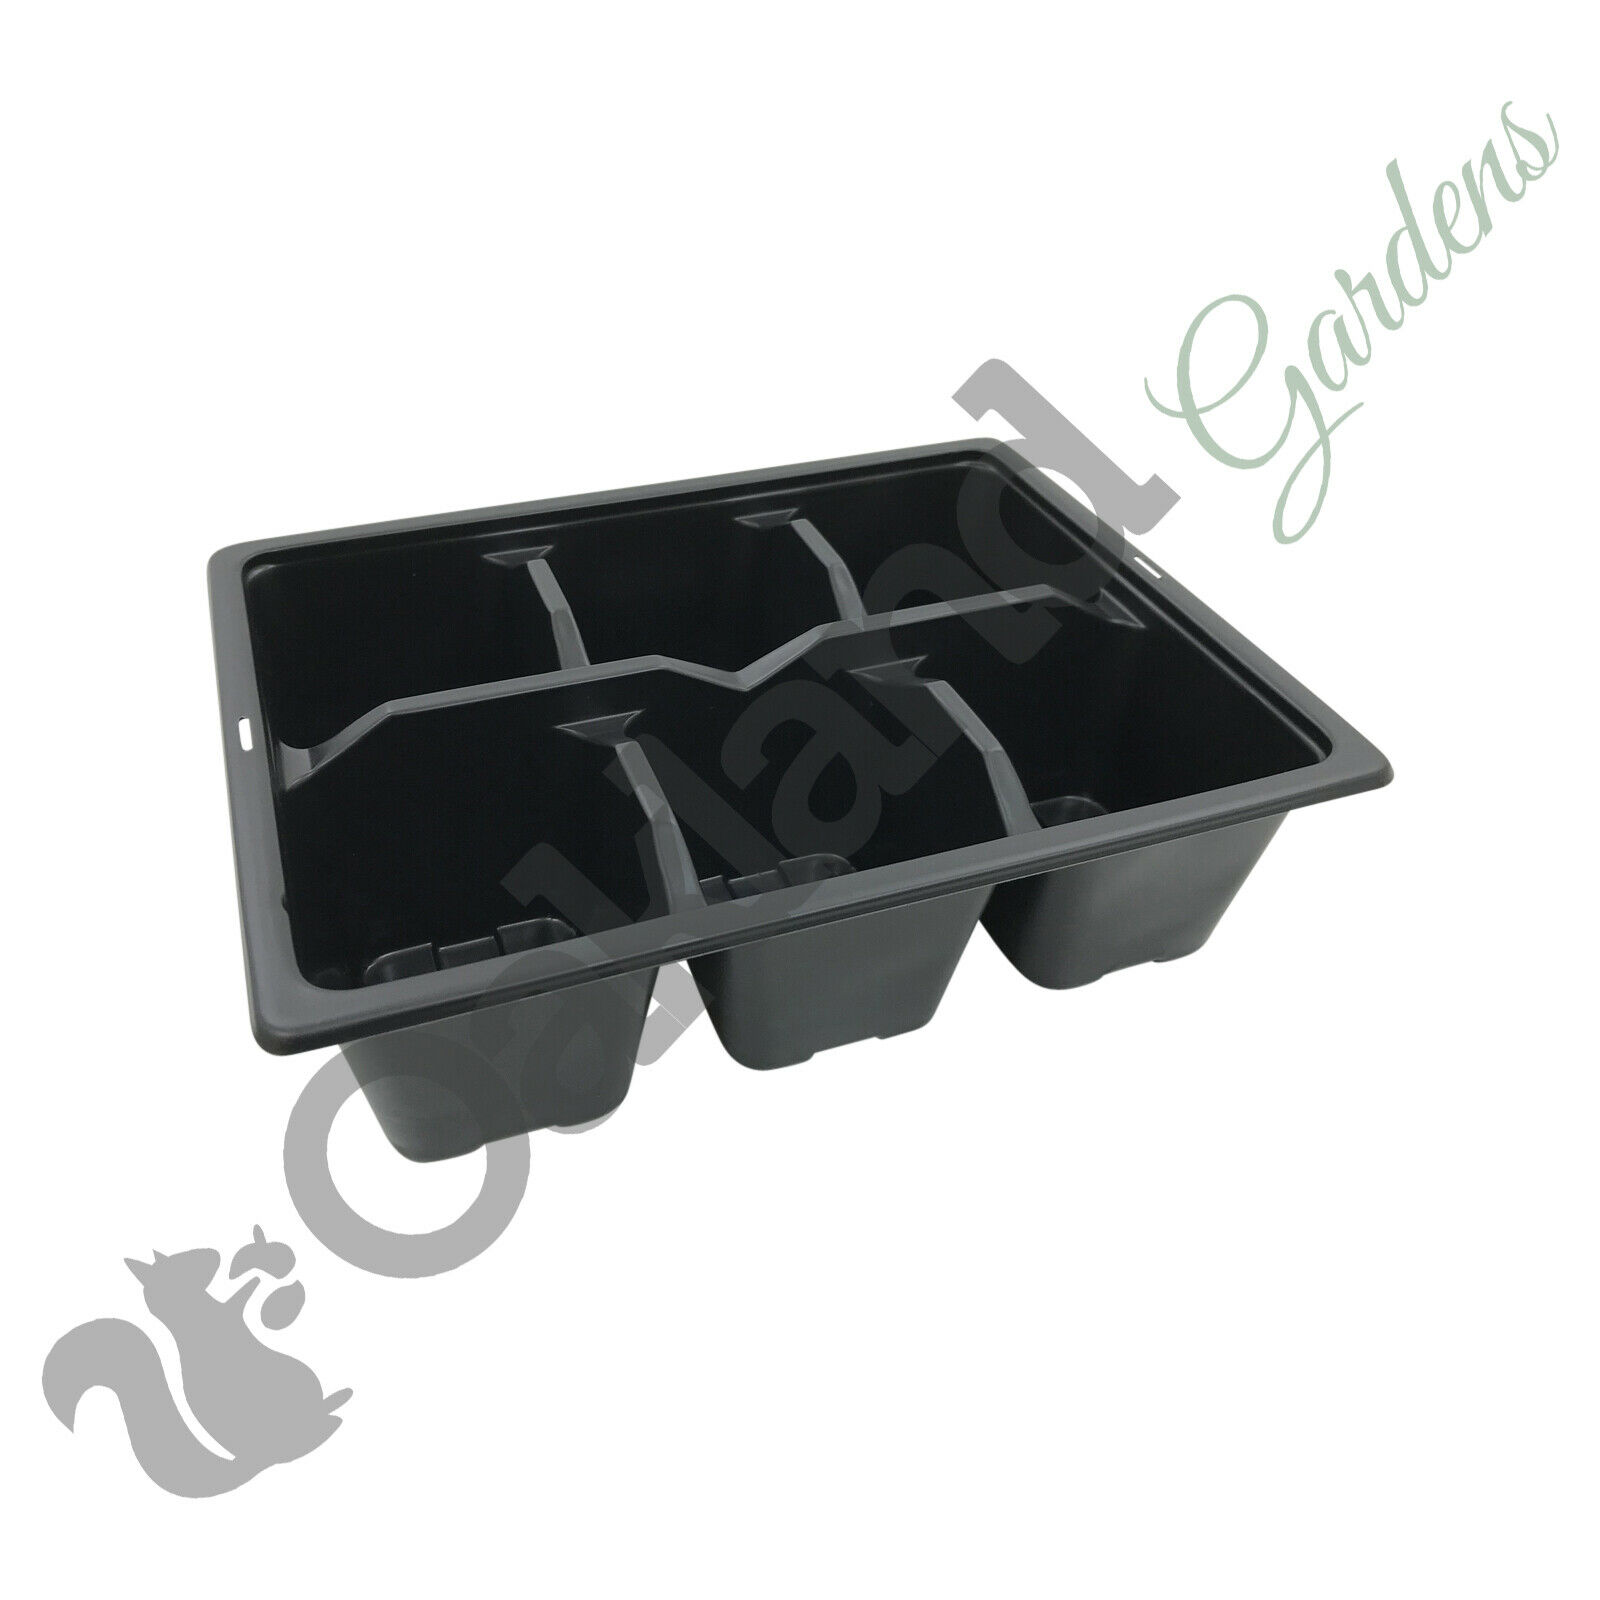 25 x 6 Cell Bedding Packs Tray Plant Plug Inserts Seed Trays Professional